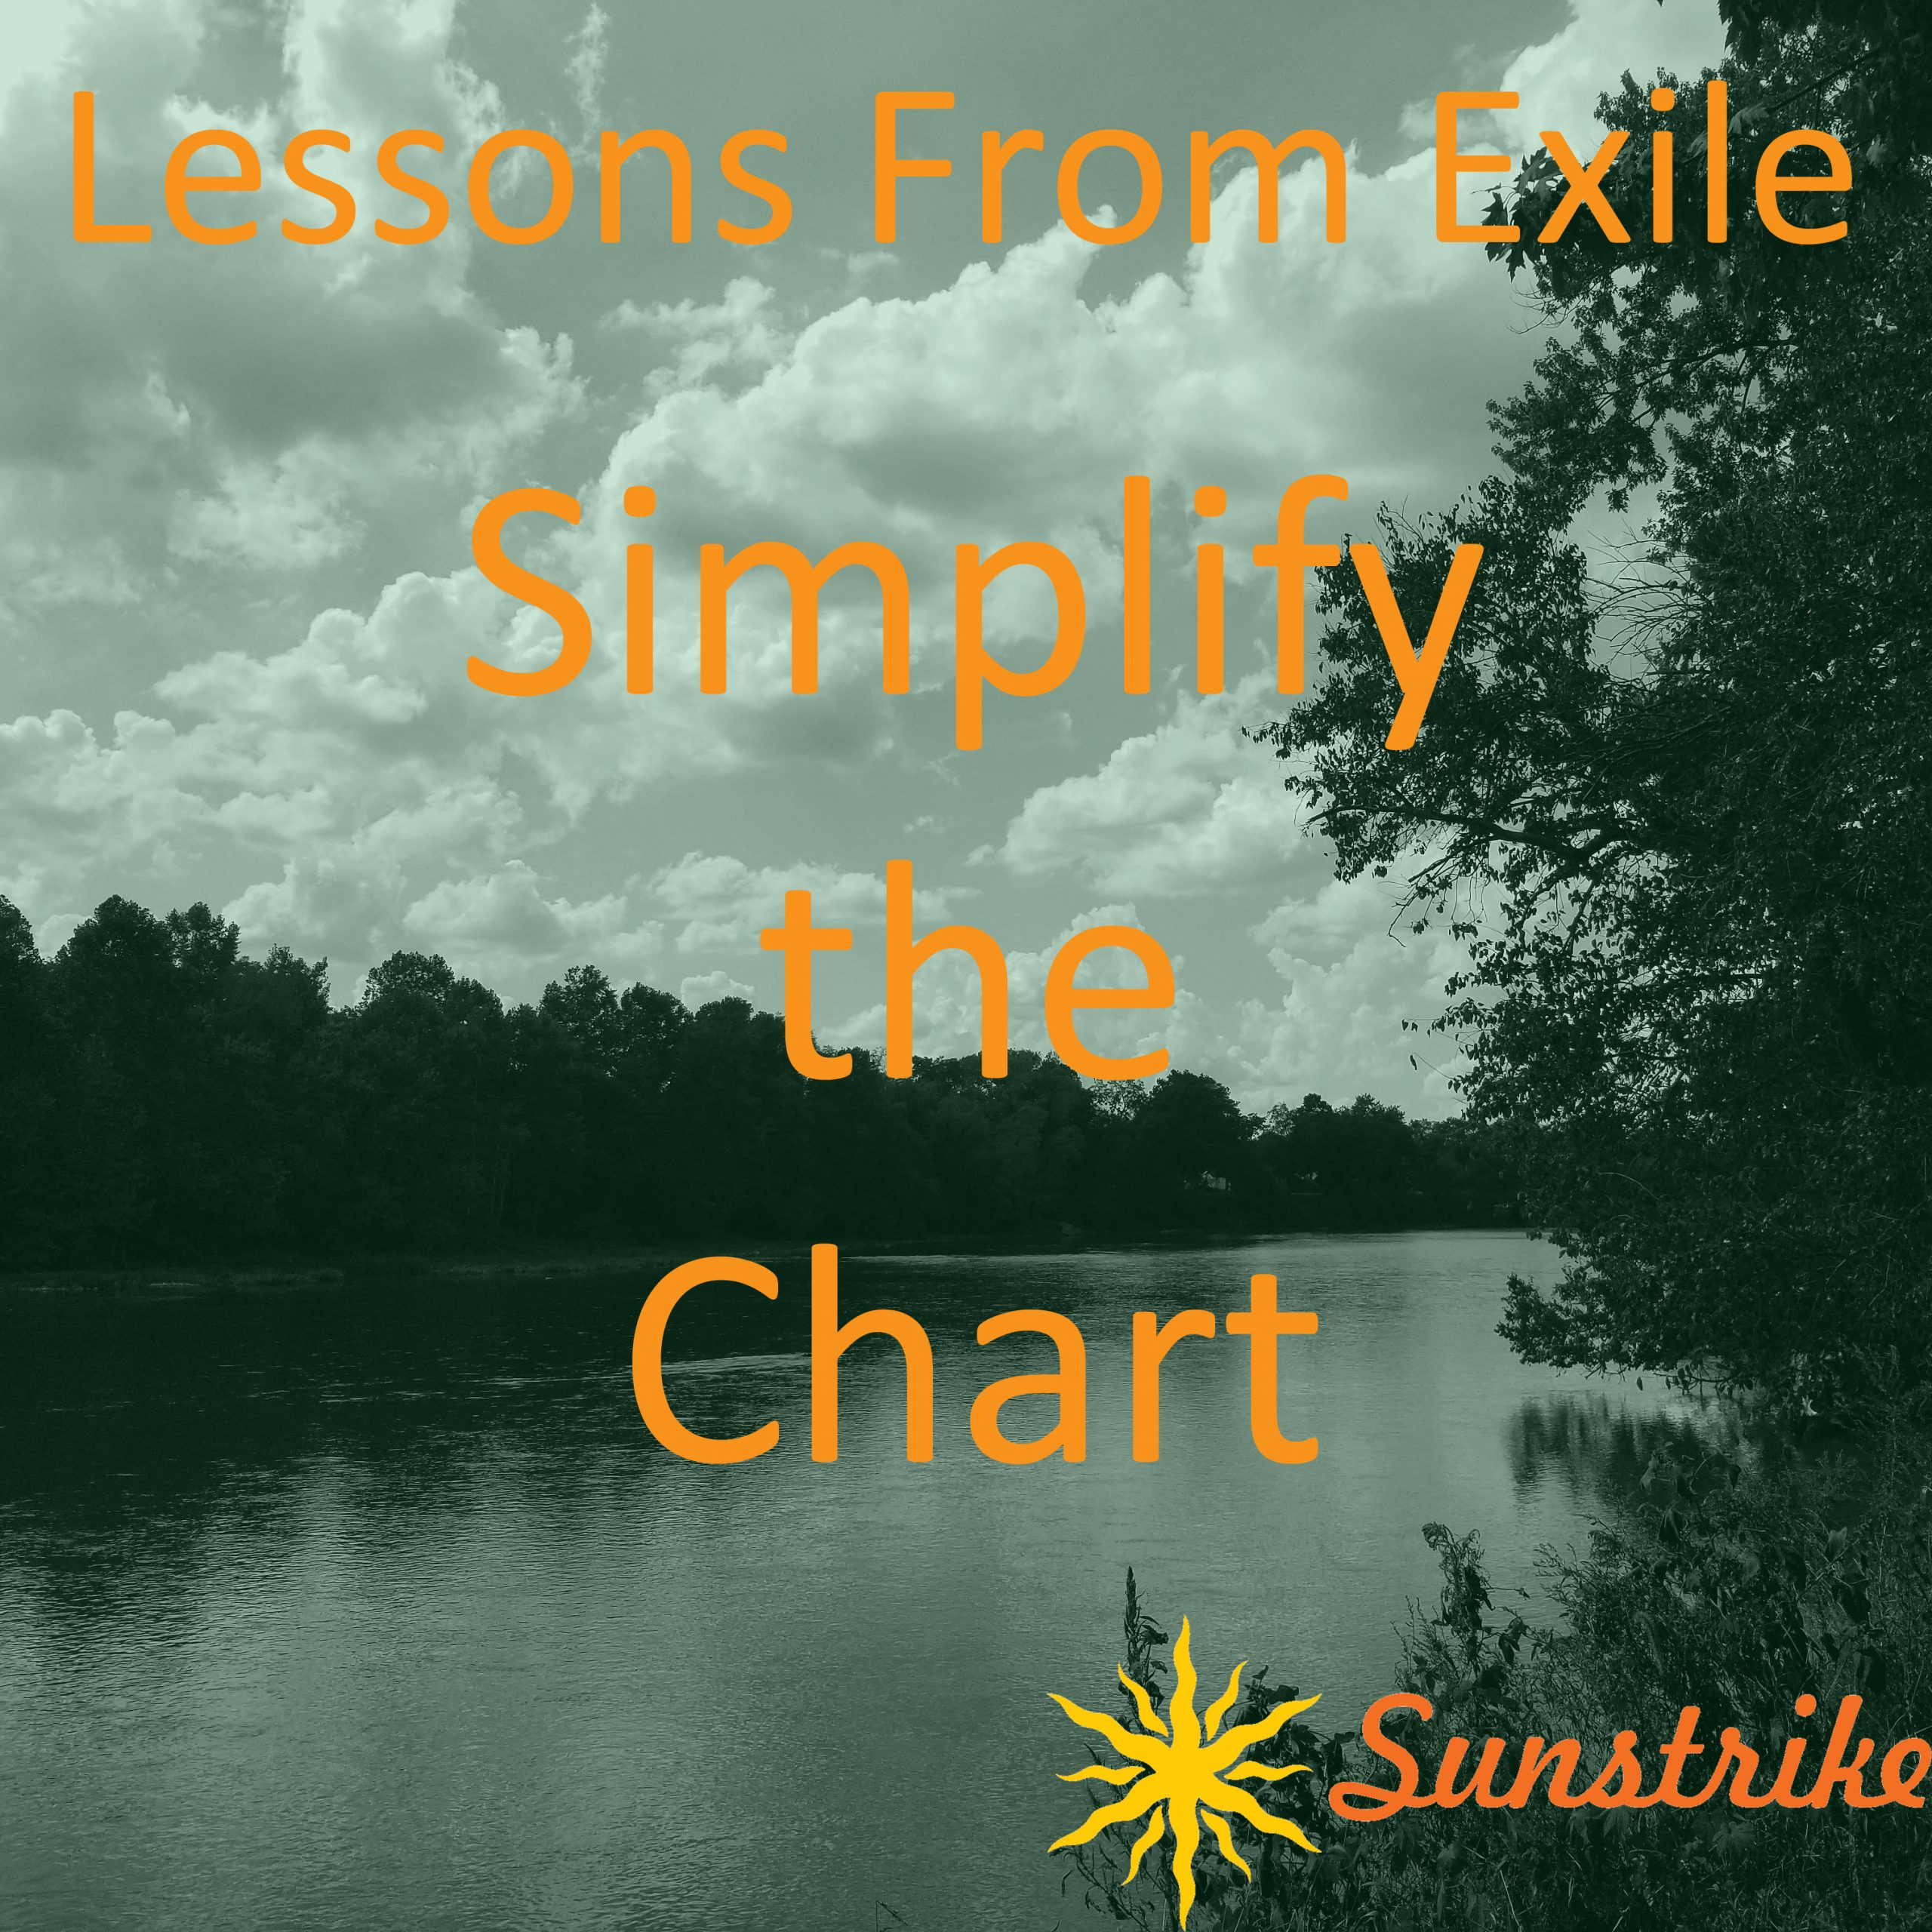 Lessons from Exile #60: Simplify the Chart